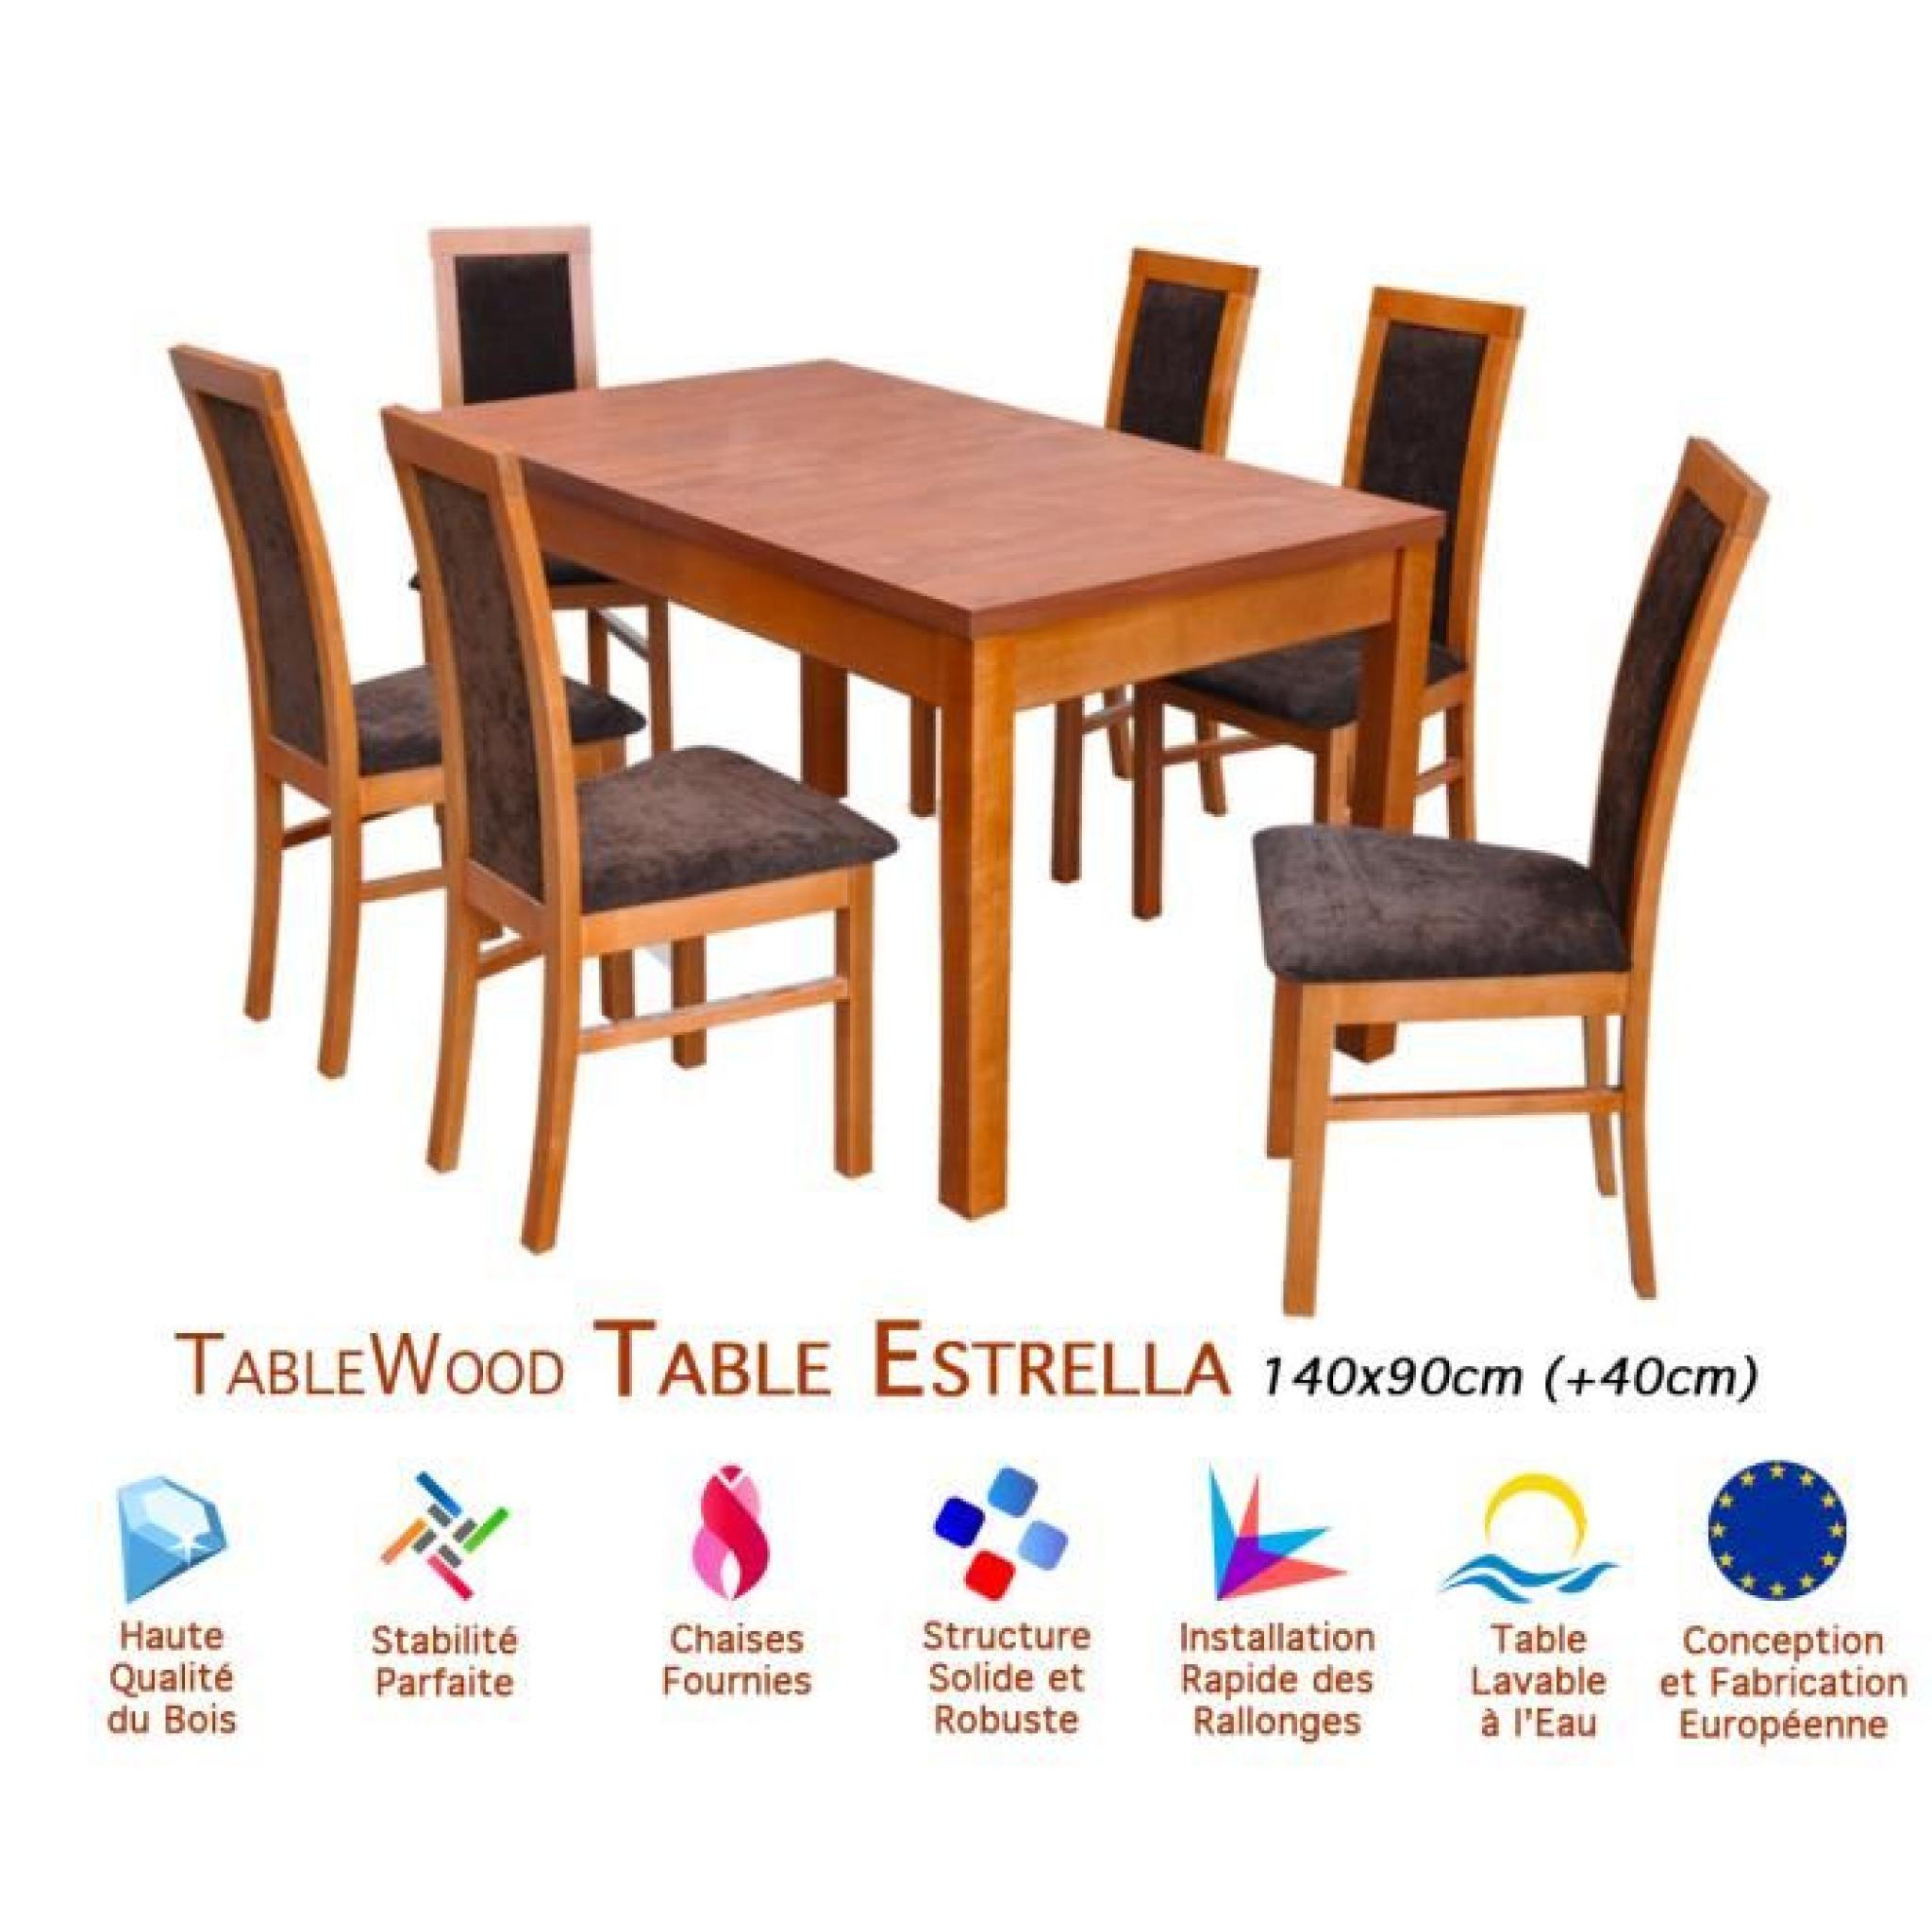 Ensemble table extensible et 6 chaises tablewood estrella for Ensemble table et 4 chaises pas cher